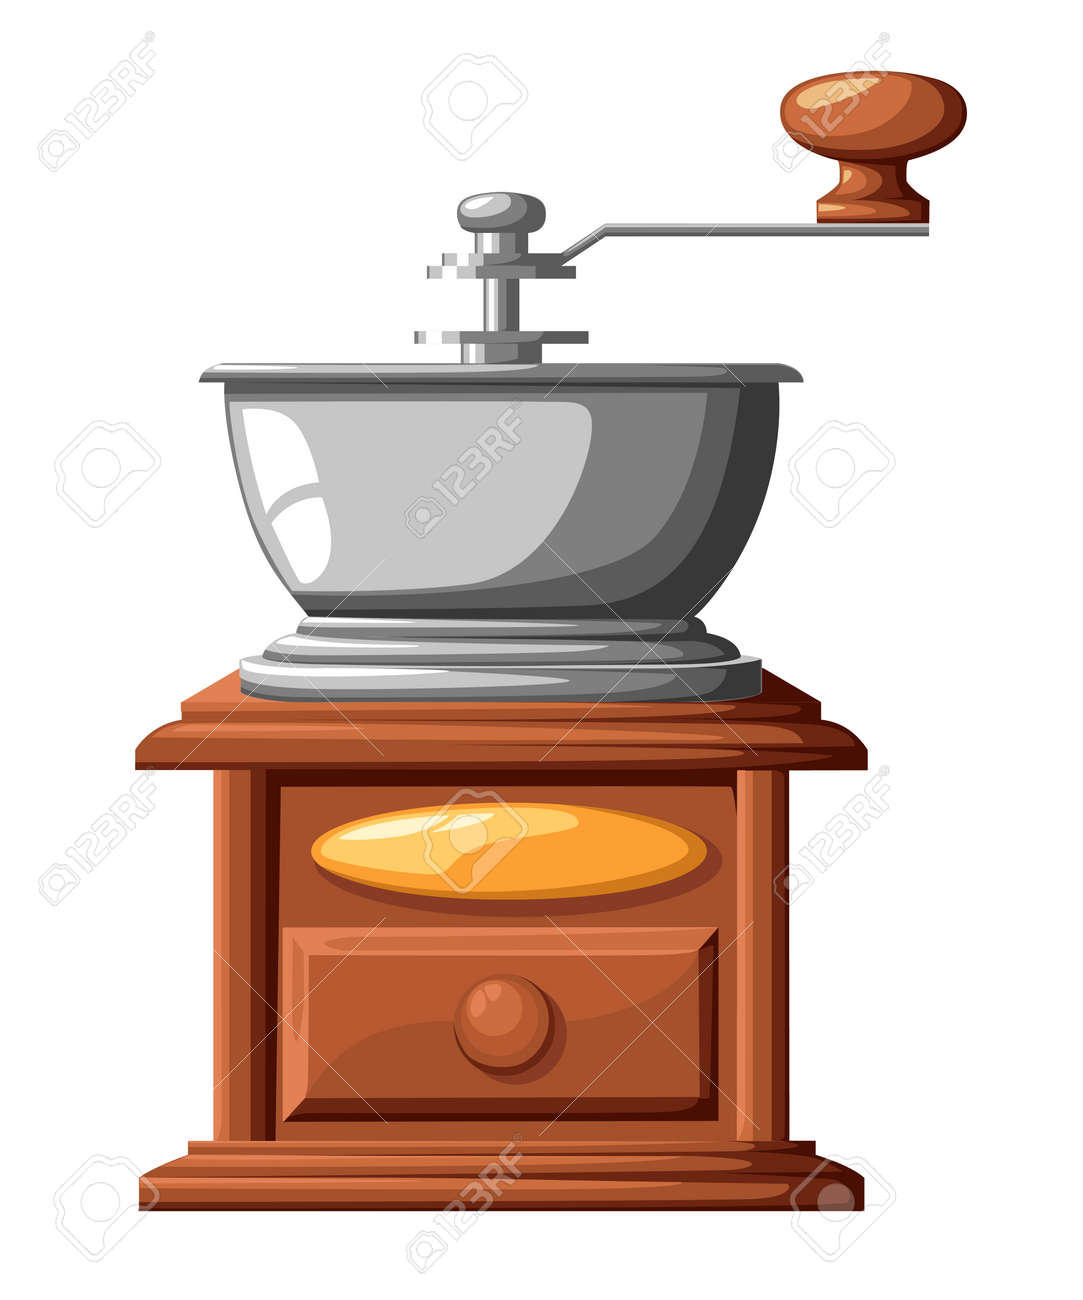 Clip Art Vector - Coffee mill grinder with coffee beans. Stock EPS  gg81790305 - GoGraph